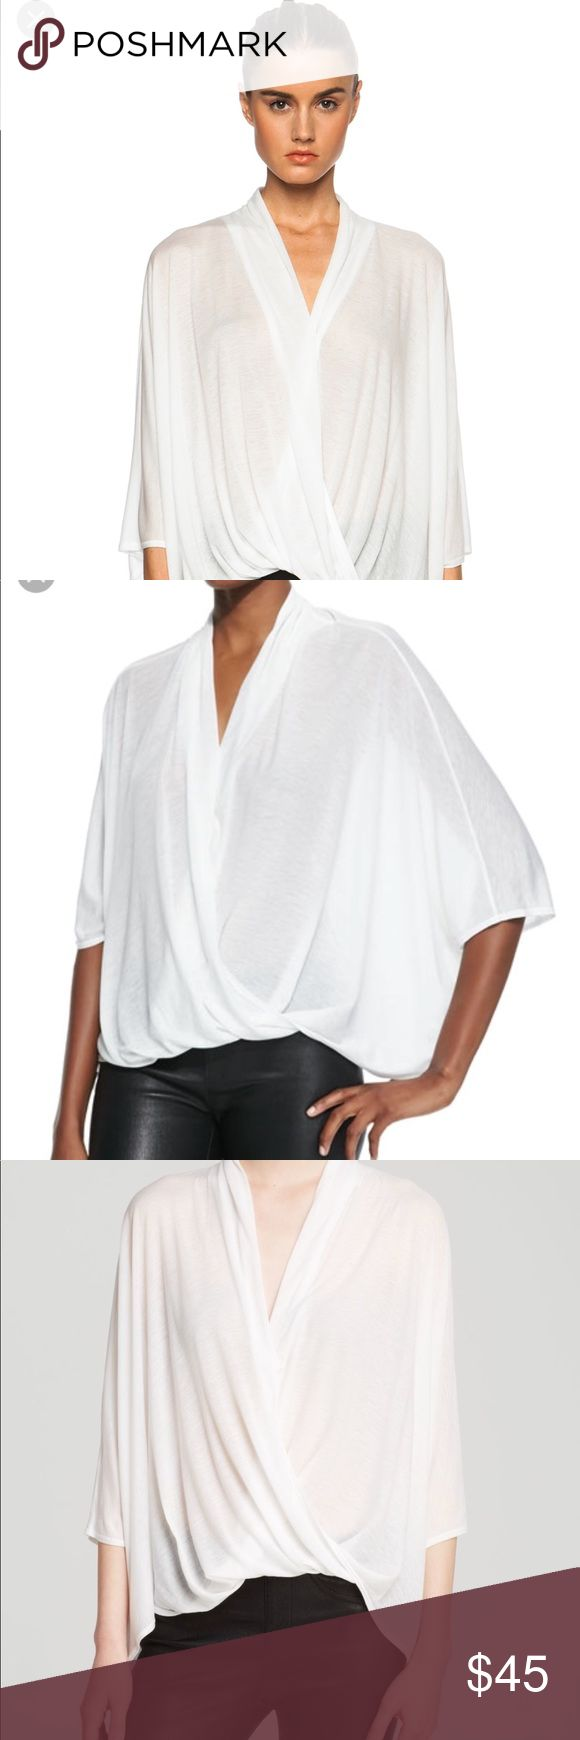 Helmet Lang jersey top Helmet Lang size Petite. 'Entity' tencel jersey asymmetrical top with batwing sleeves in white. Draped fabric detail in front with asymmetrical hem.  Brand new, never worn. Perfect condition. Price firm. Helmut Lang Tops Blouses